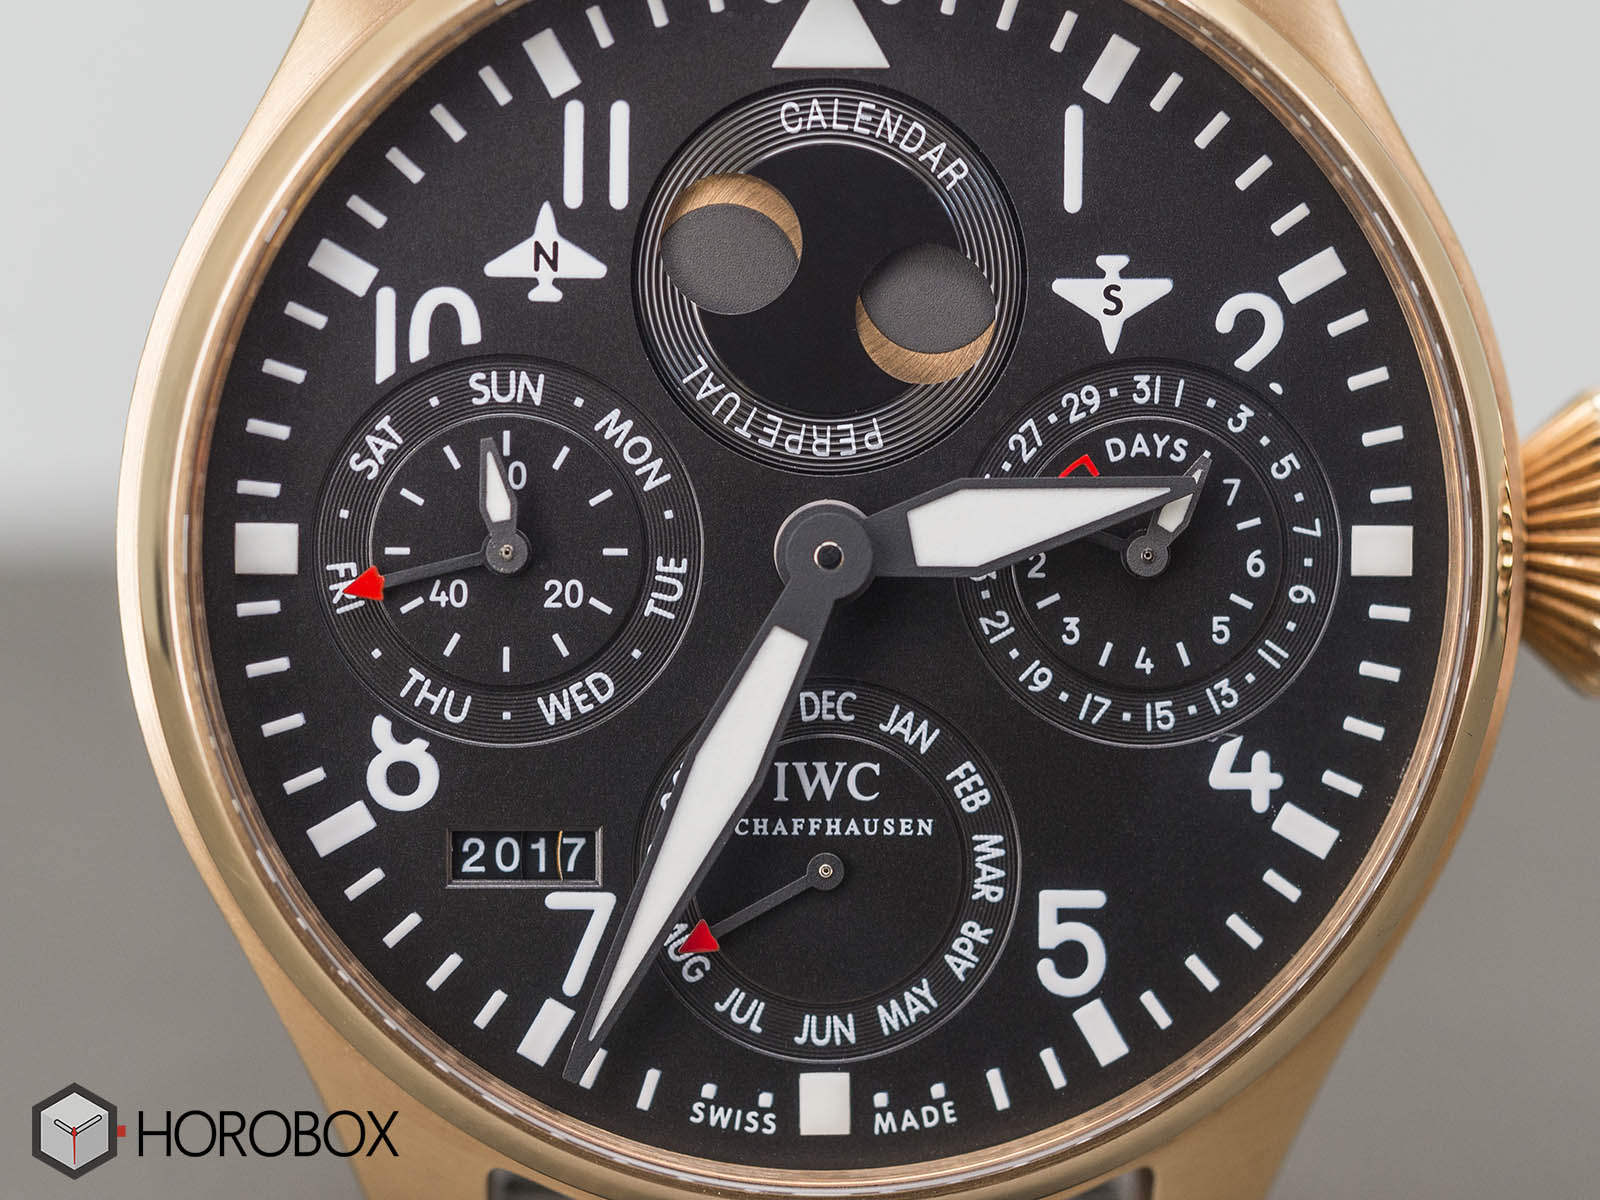 iwc-big-pilot-perpetual-calendar-18k-red-gold-limited-edition-iw502628-2.jpg